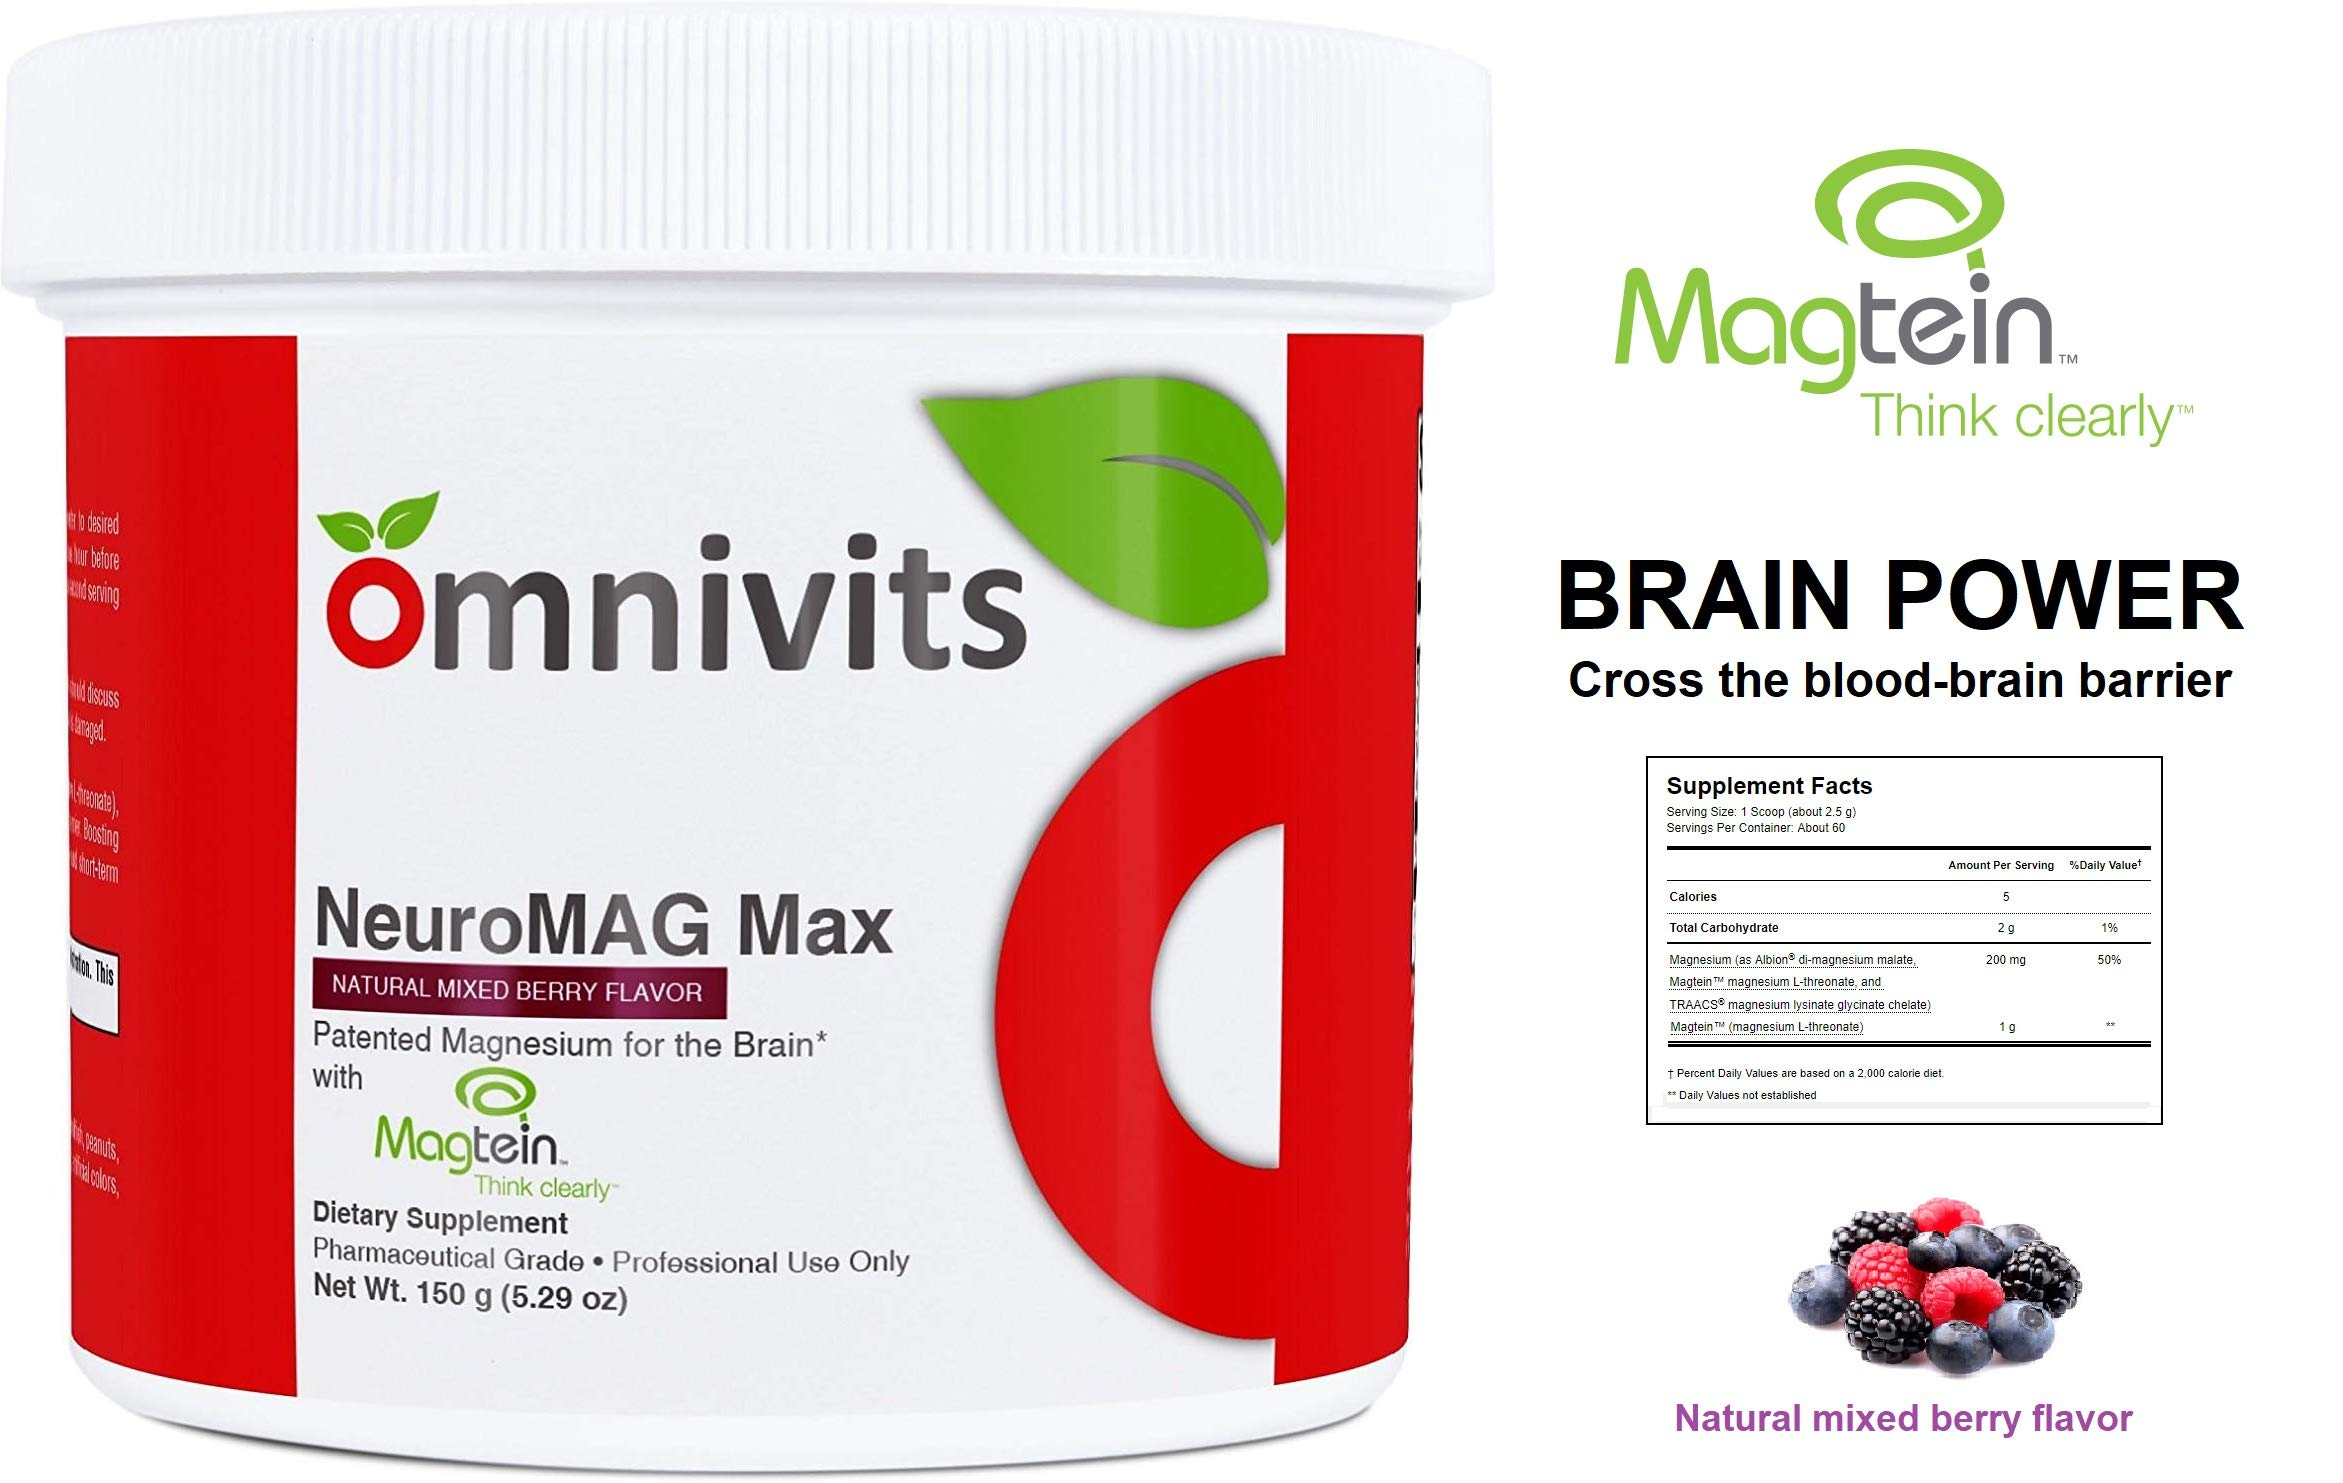 Omnivits Neuro MAG Max Natural Mixed Berry Flavor | Optimized Magnesium for Brain & Body | Magnesium Chelate Albion Di-Magnesium Malate & Magtein | Highly Absorbable | 5.29 oz 60 Serving